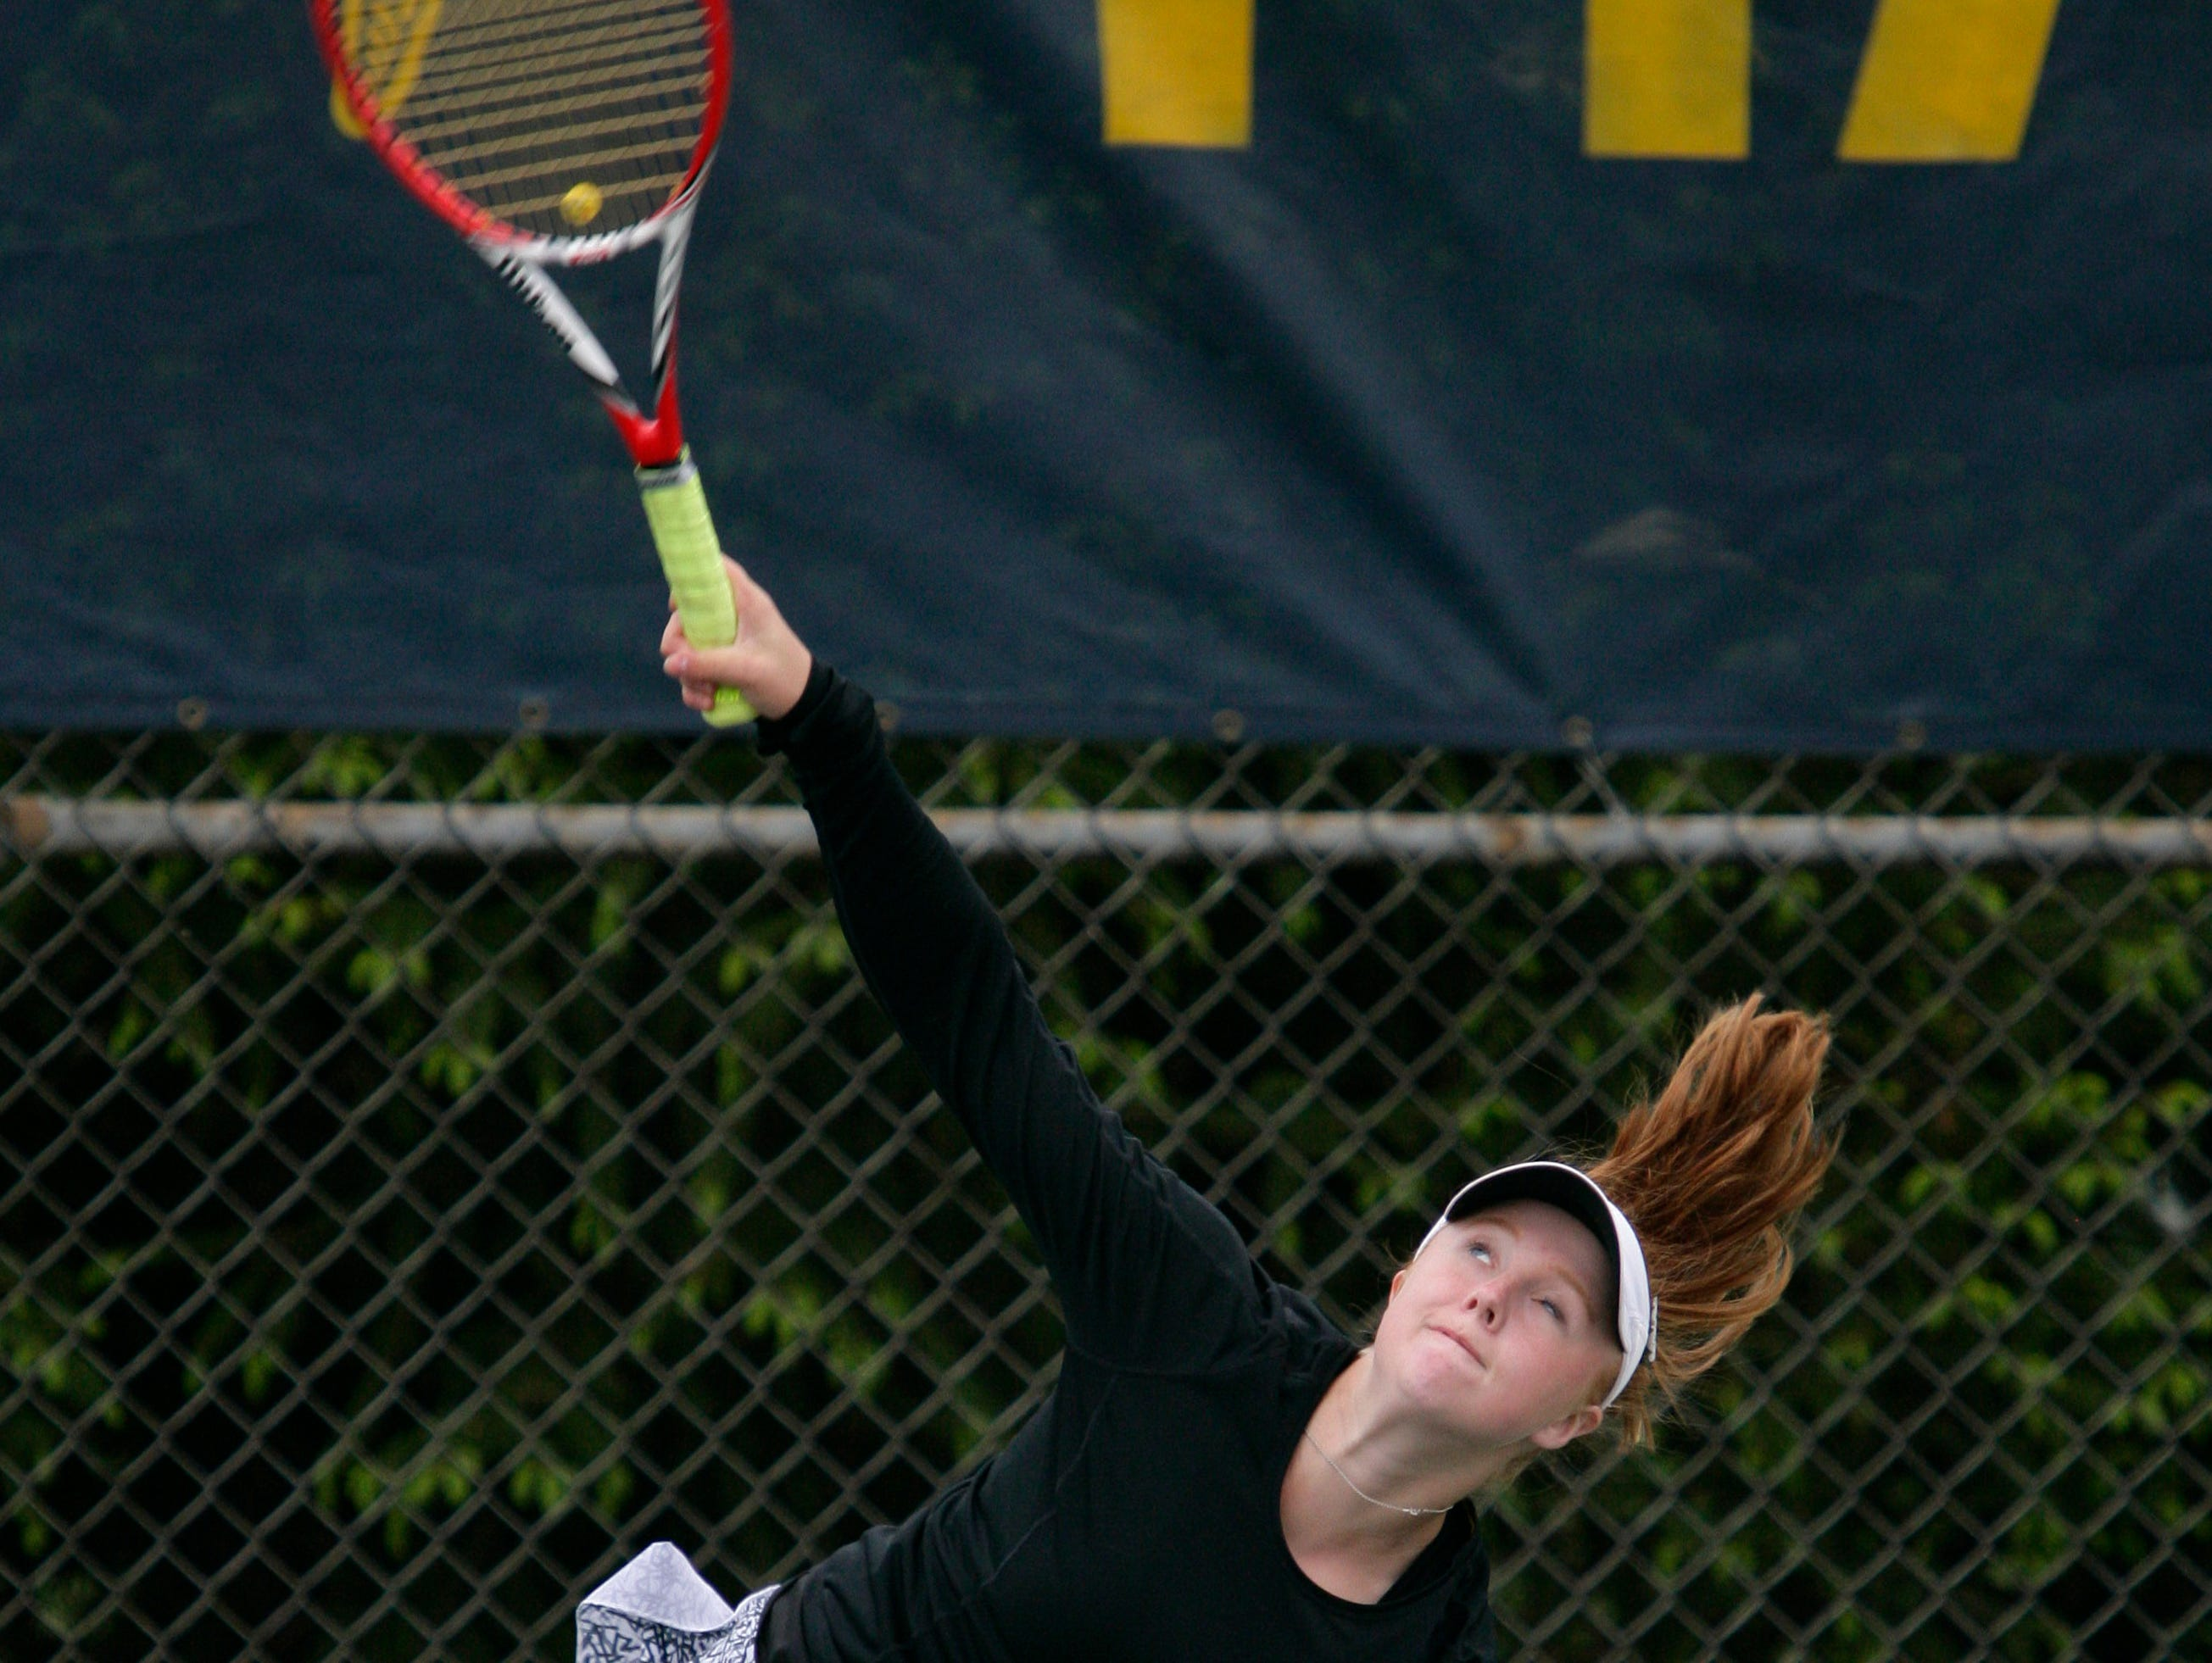 Williamston's Sara Daavettila is the top seed at No. 1 singles for the Division 3 state finals